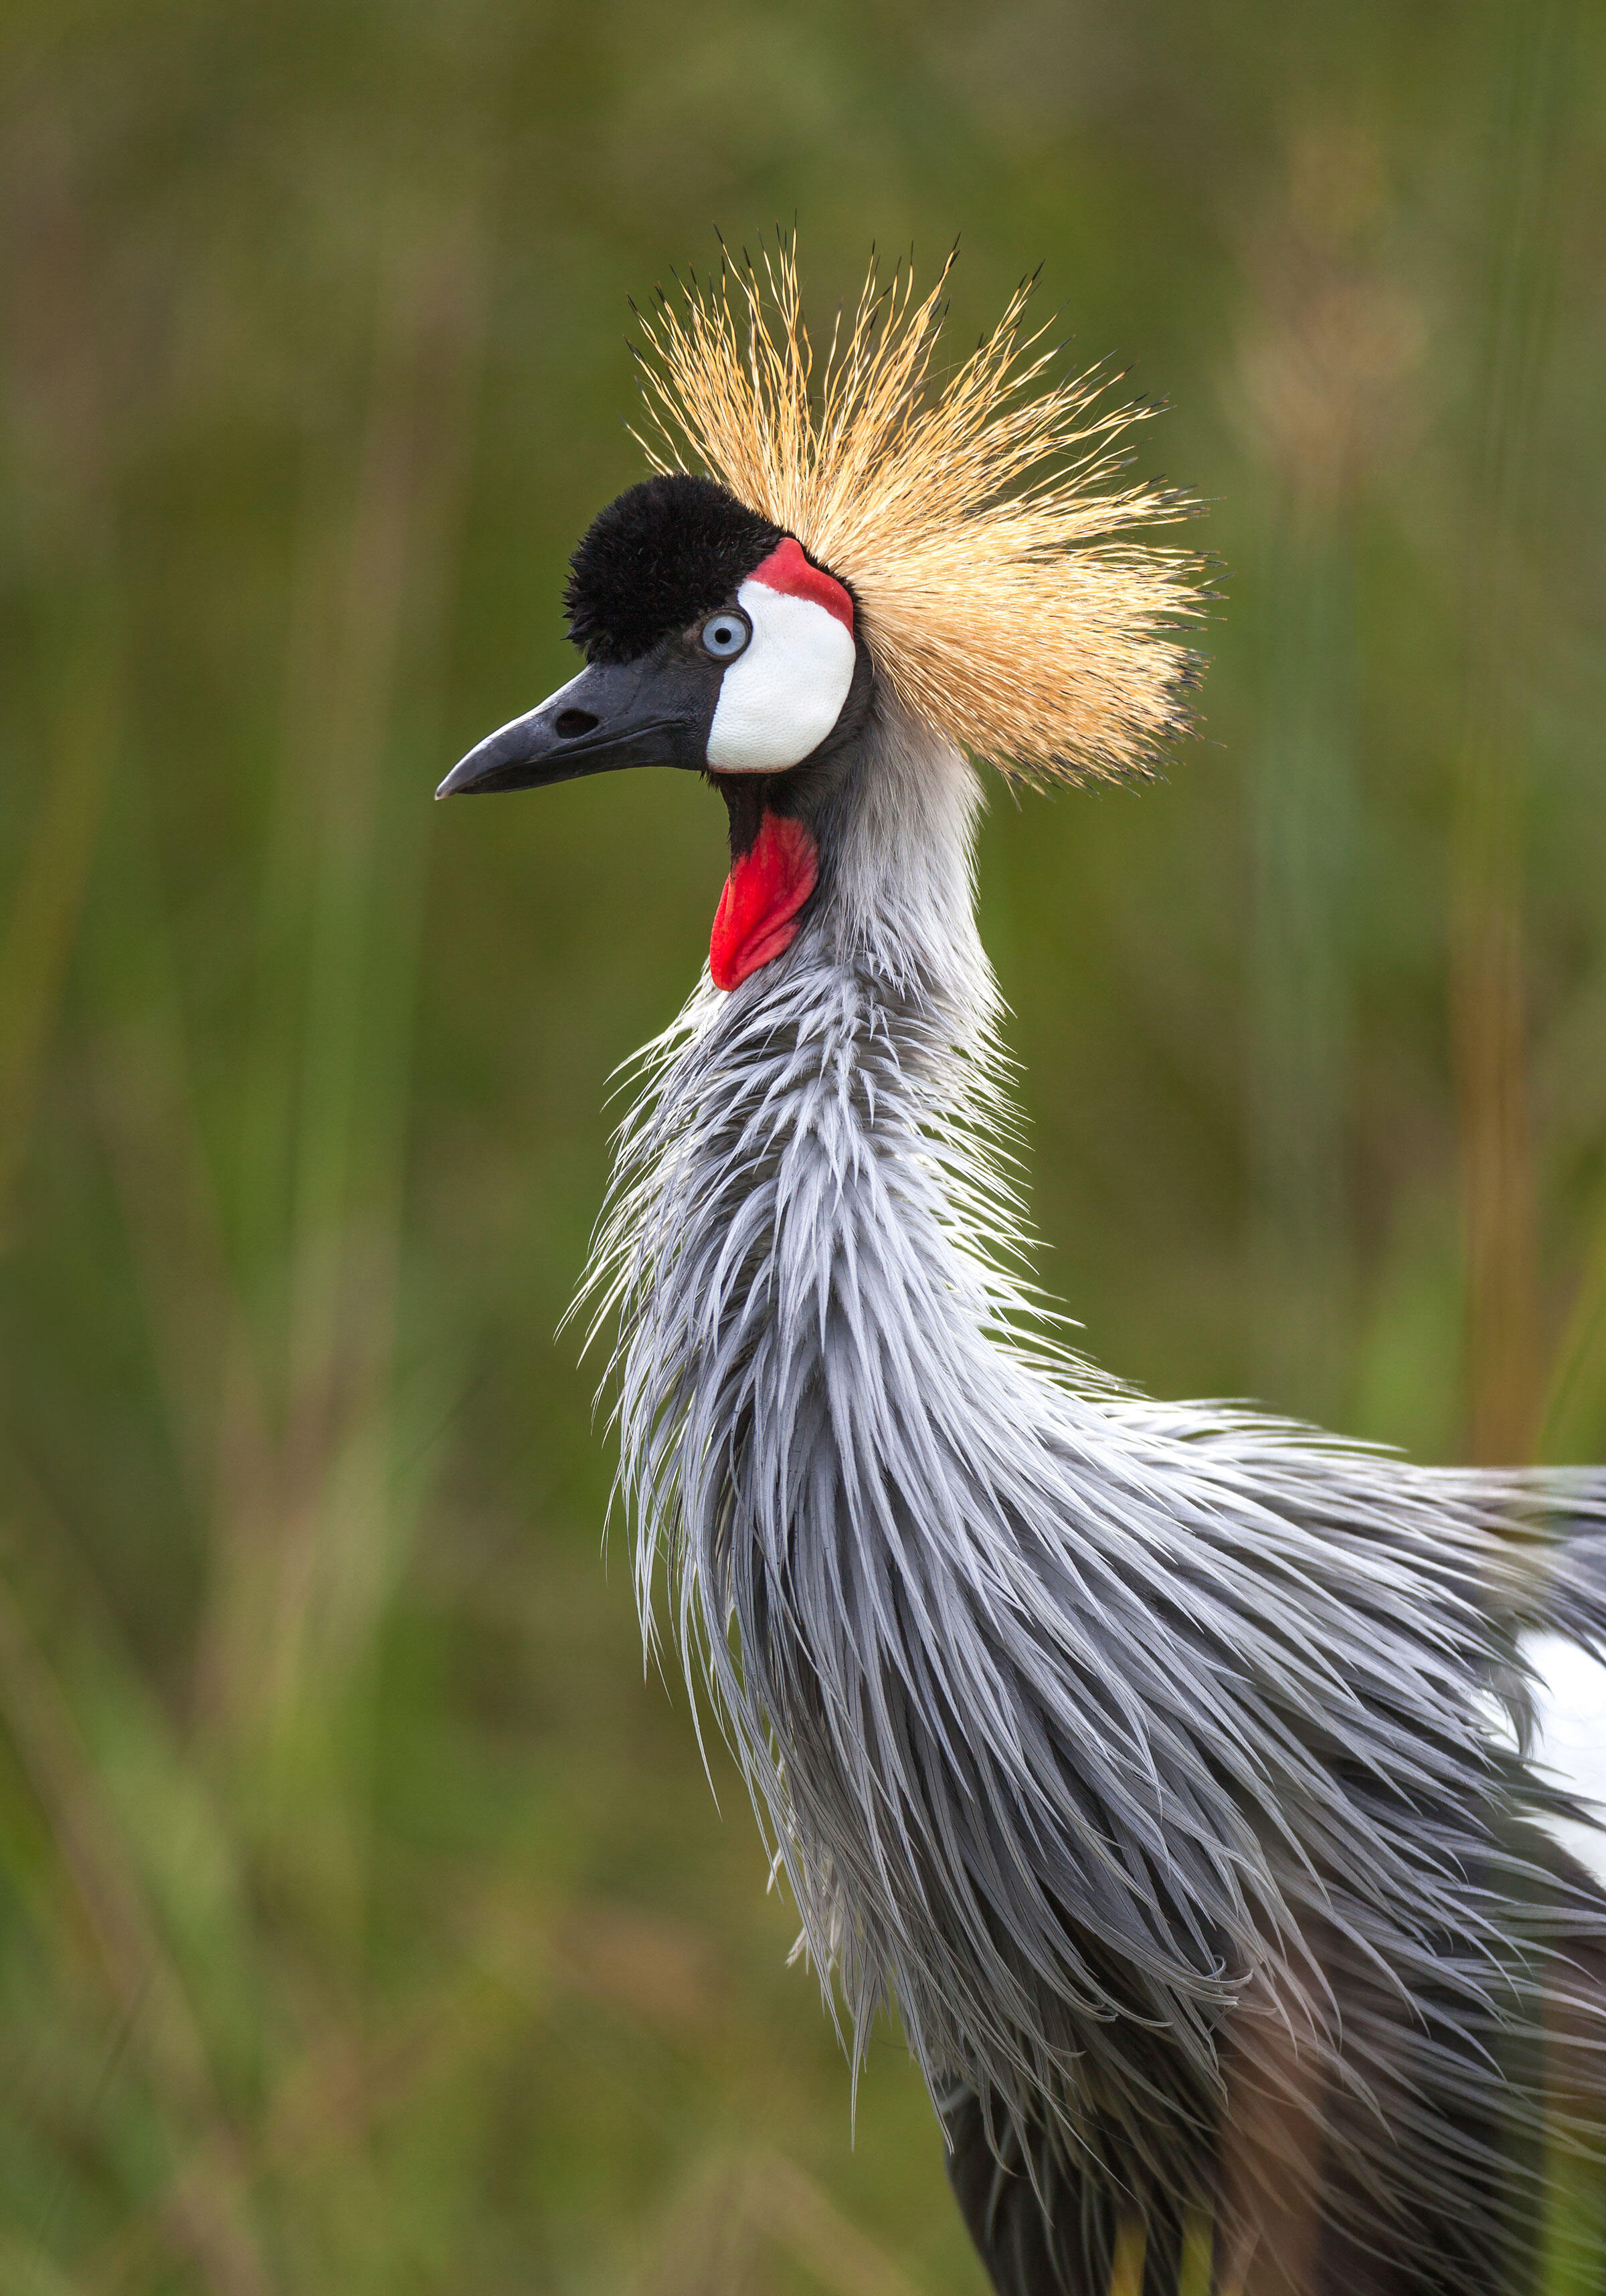 A Grey Crowned-Crane, the national bird of Uganda, shows off its crown of stiff, golden feathers. Around 30,000 of the birds live in the dry savannah in Africa south of the Sahara Desert. Ted Thousand